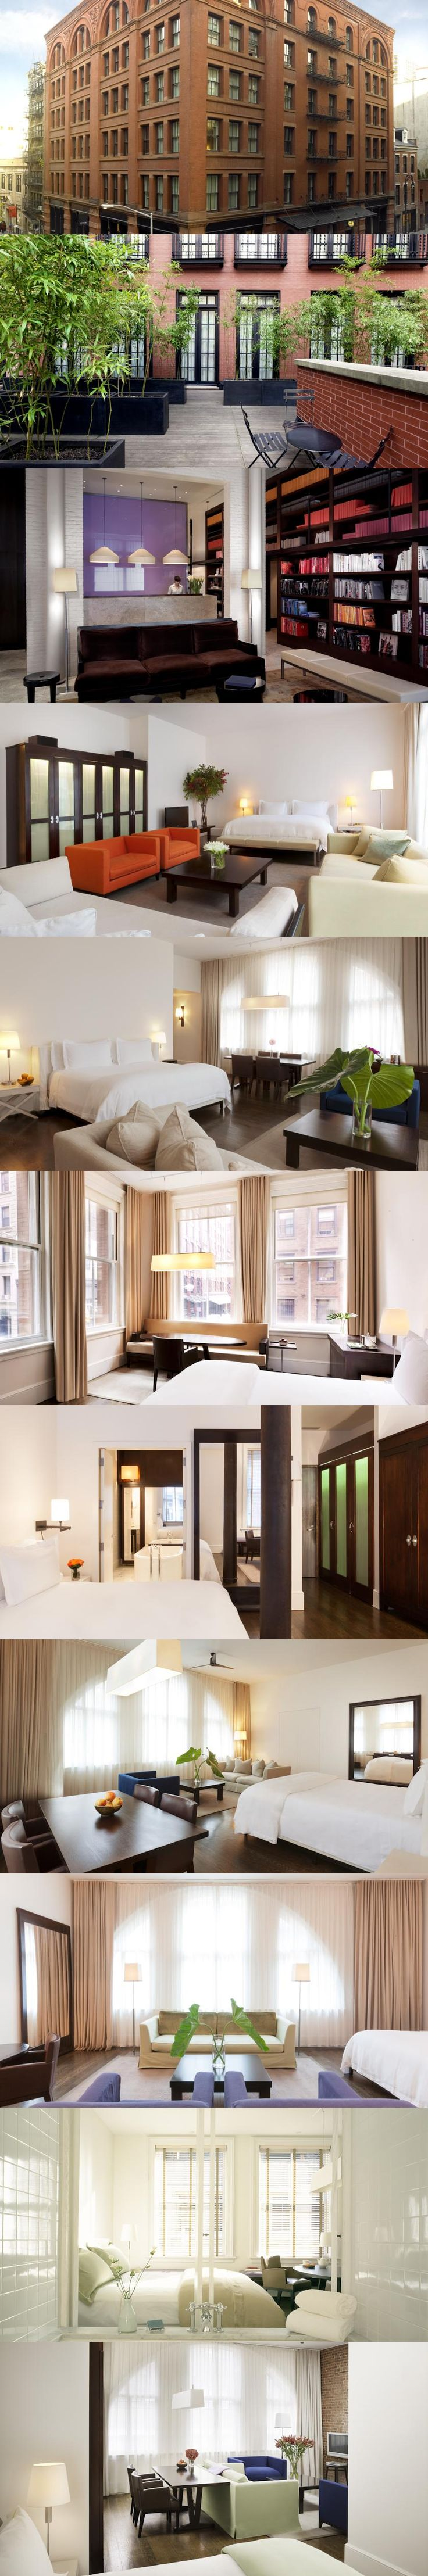 The Mercer Hotel in New York. Located in Soho, this luxury hotel is a 5-minute walk from Washington Square Park and Little Italy. It features 24-hour concierge service and loft-style rooms. Select your room: http://www.booking.com/hotel/us/the-mercer.en-us.html?aid=936696